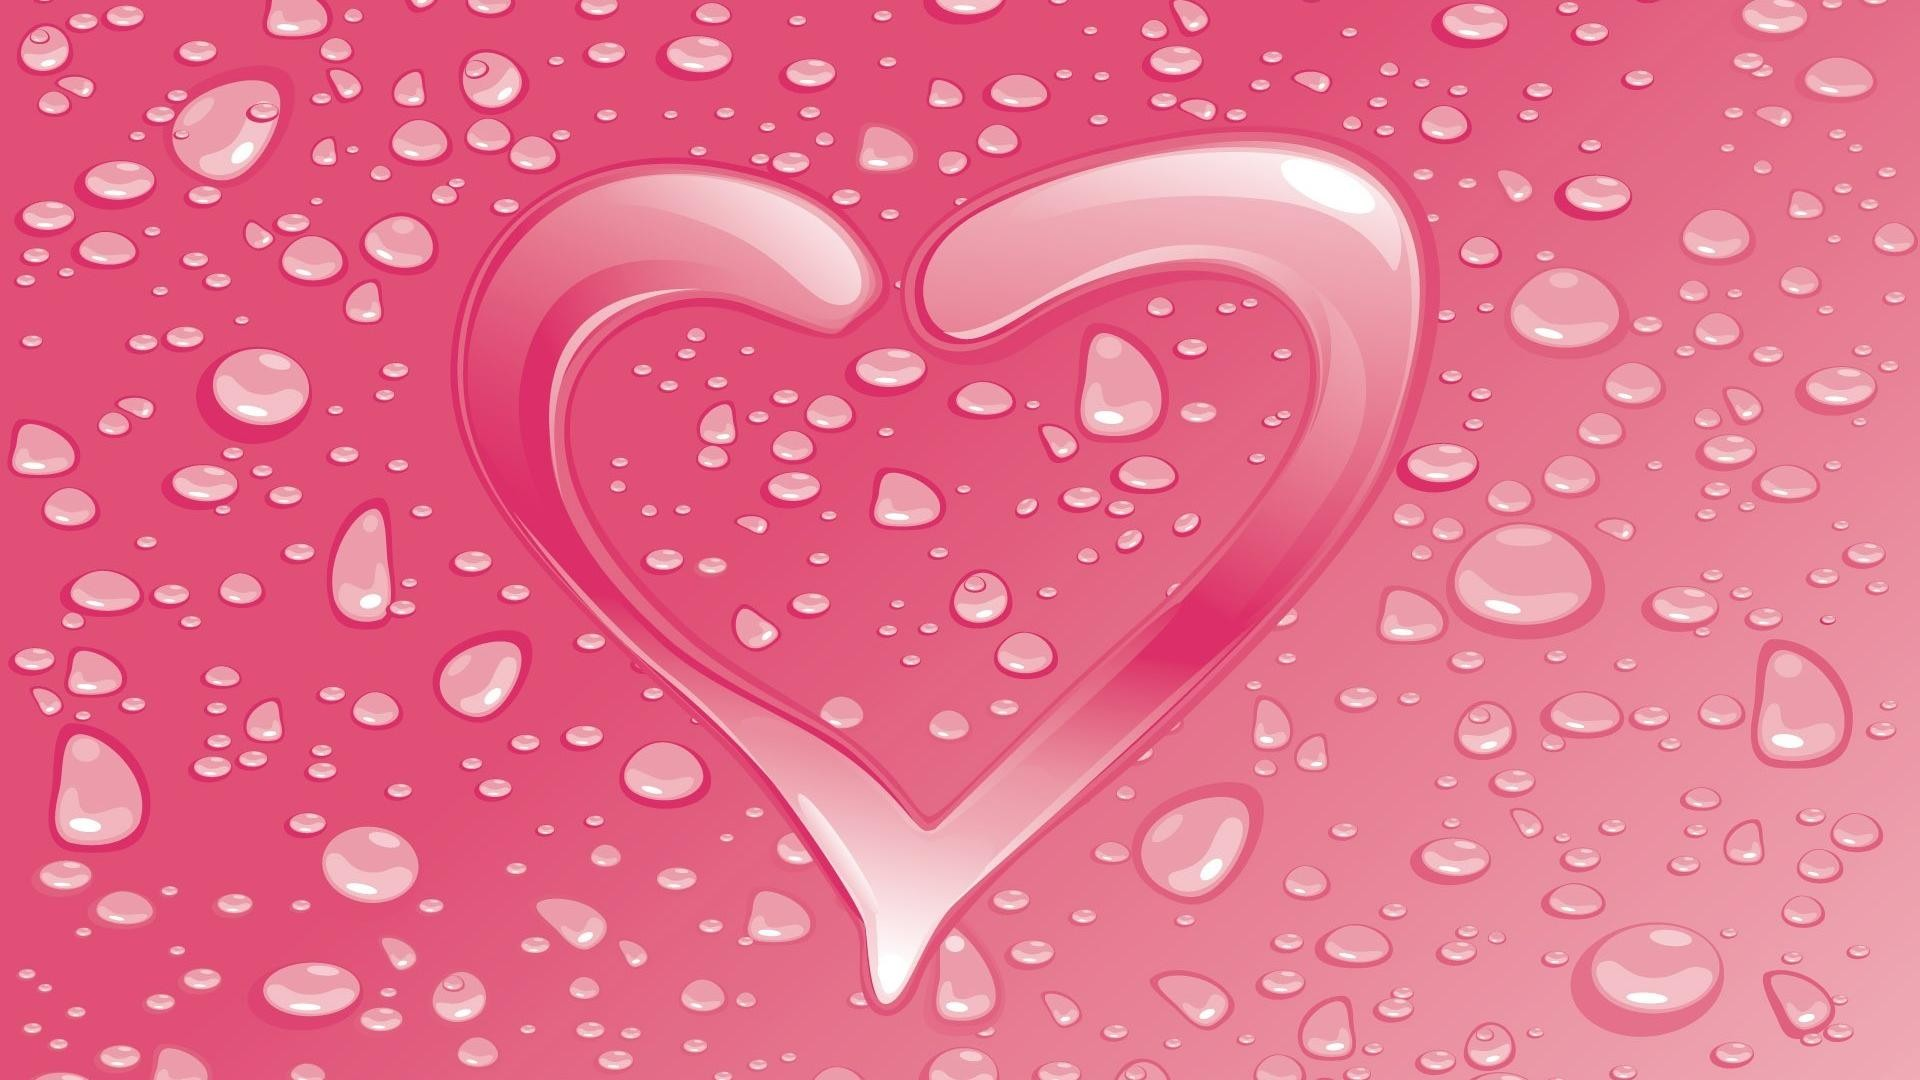 1920x1080 Love, Hearts, Valentine Backgrounds and Animated Romantic Wallpapers For  Website Design. Pink Heart Backgrounds, Colorful and Red Heart Wa.